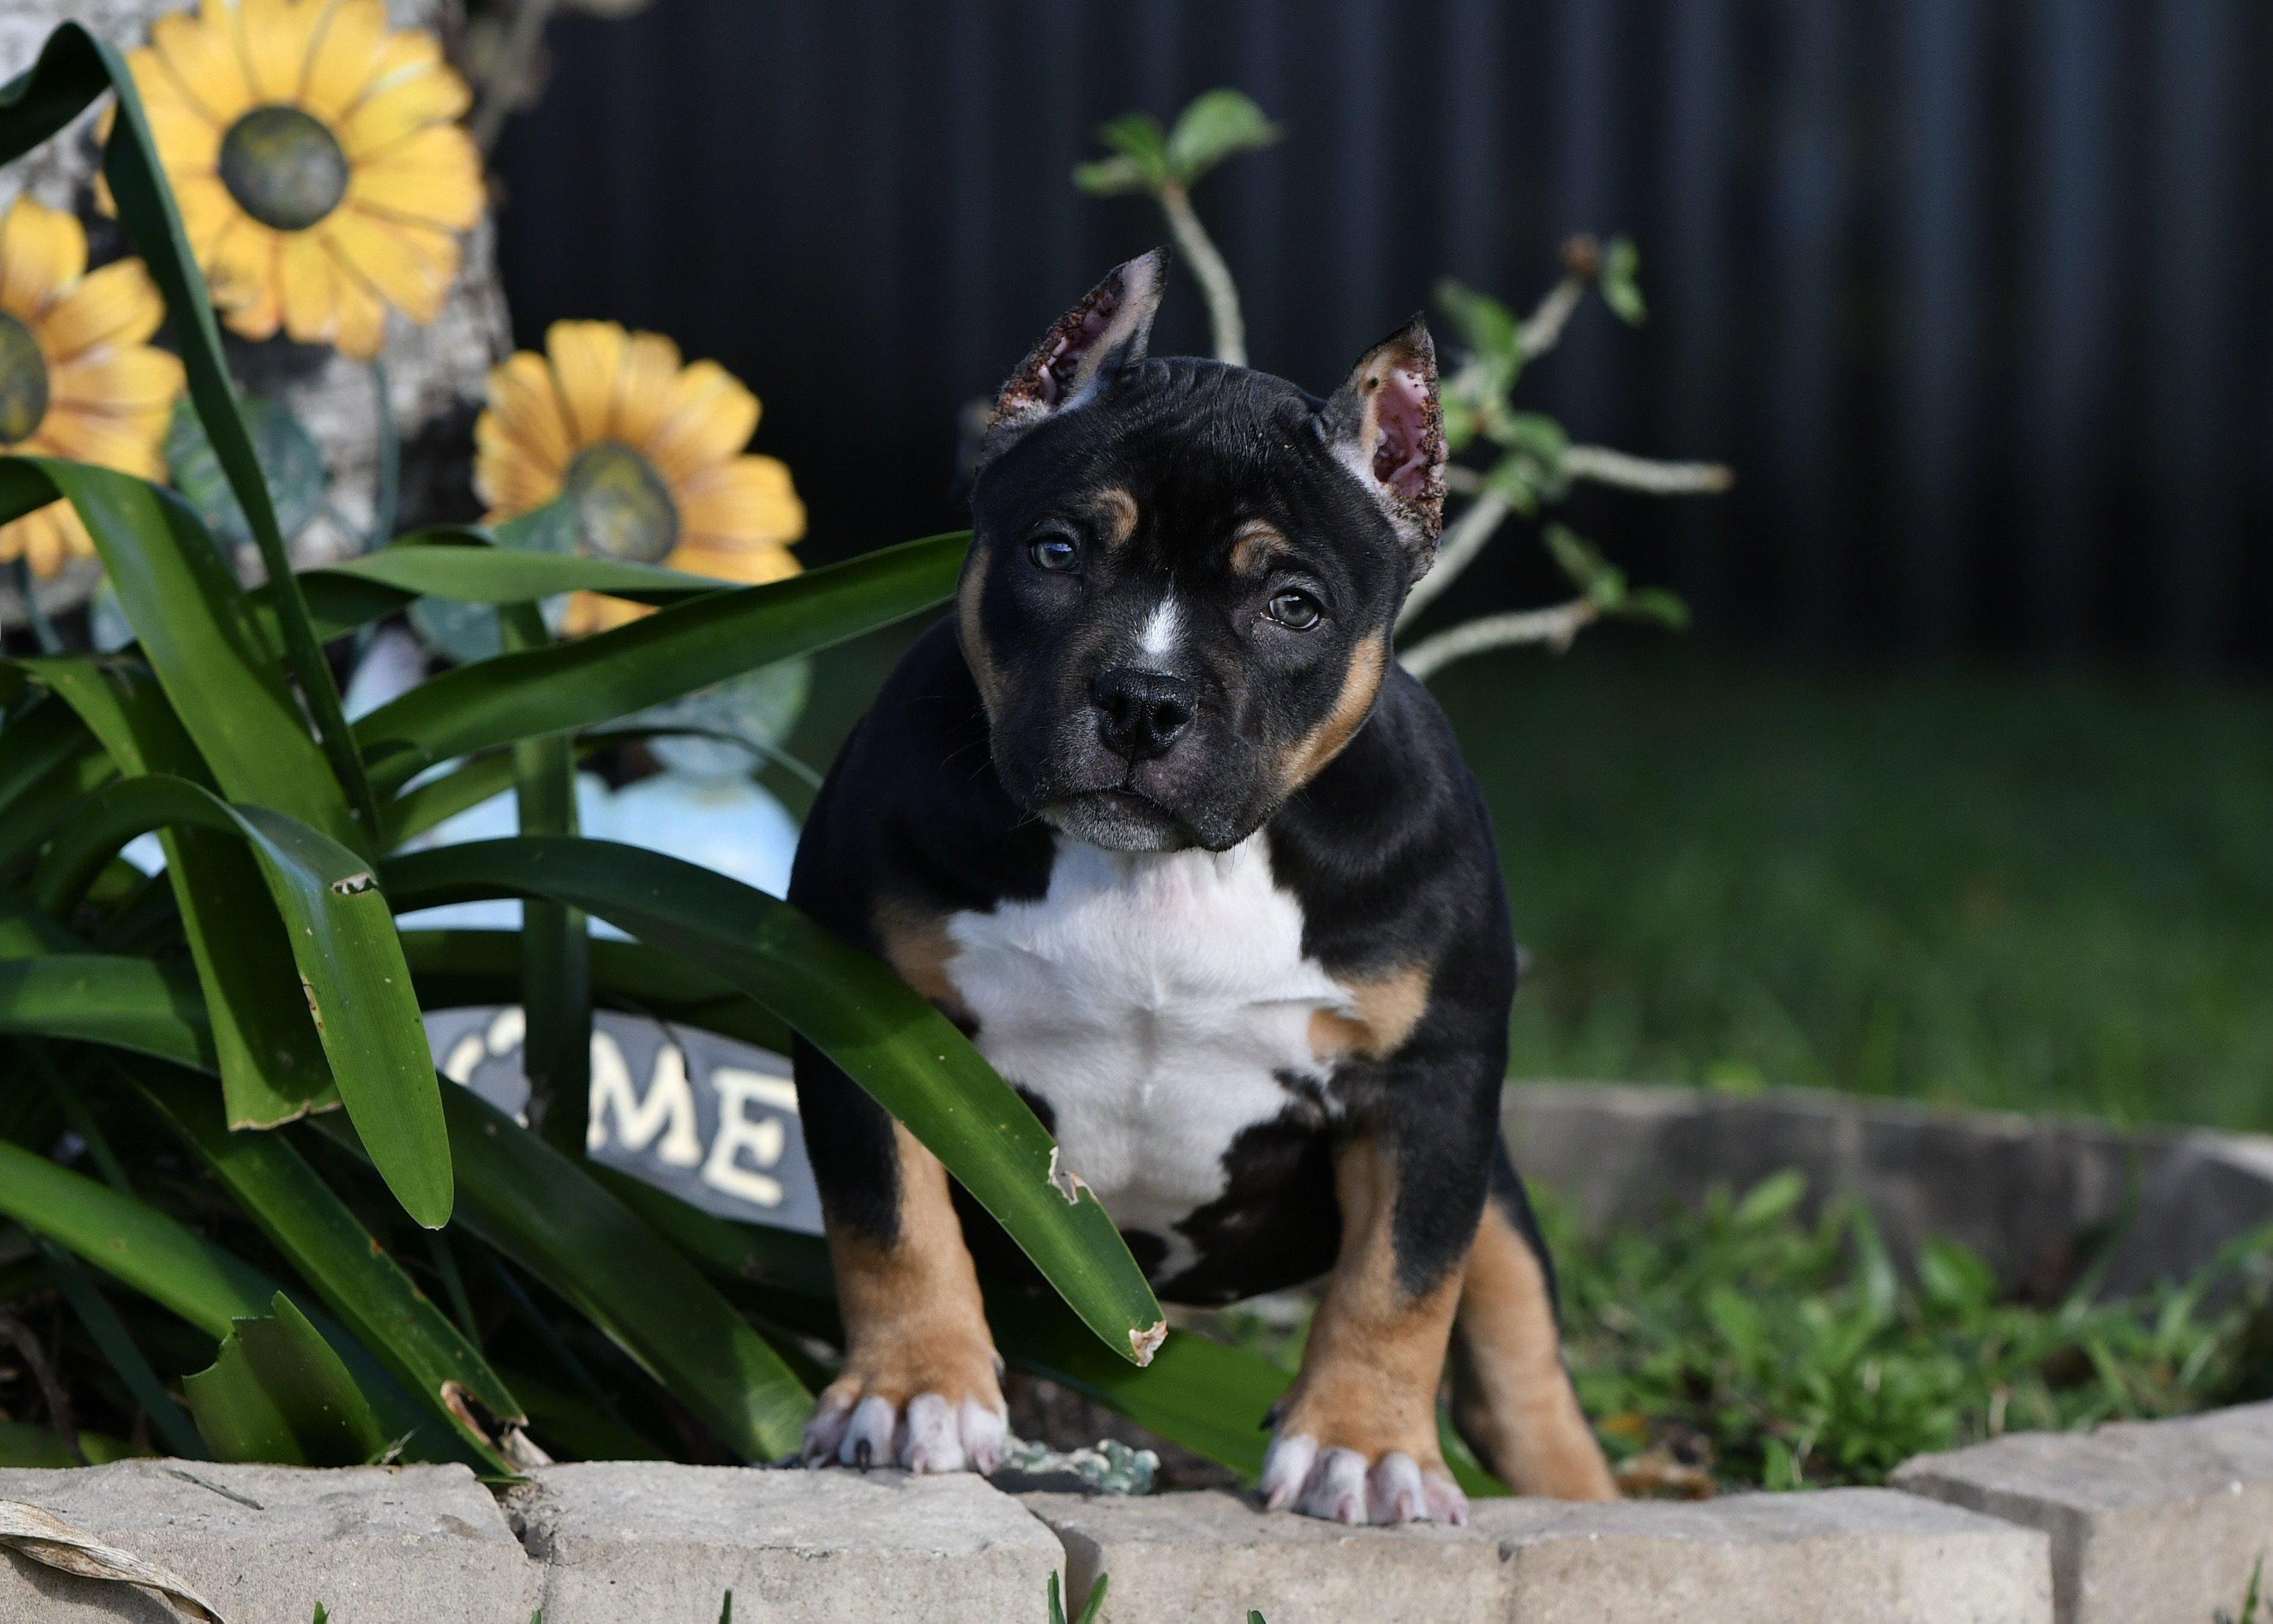 Tri Color, Pocket American Bullies, Top American Bully Breeders, Best American Bully Kennels, Stud Service, Studs, ABKC, Champions, American Bully Puppies For Sale, Venomline, Daxline, Louis V Line Bullys, Muscletone Bullys, Micro bully, Exotic Bully, puppies